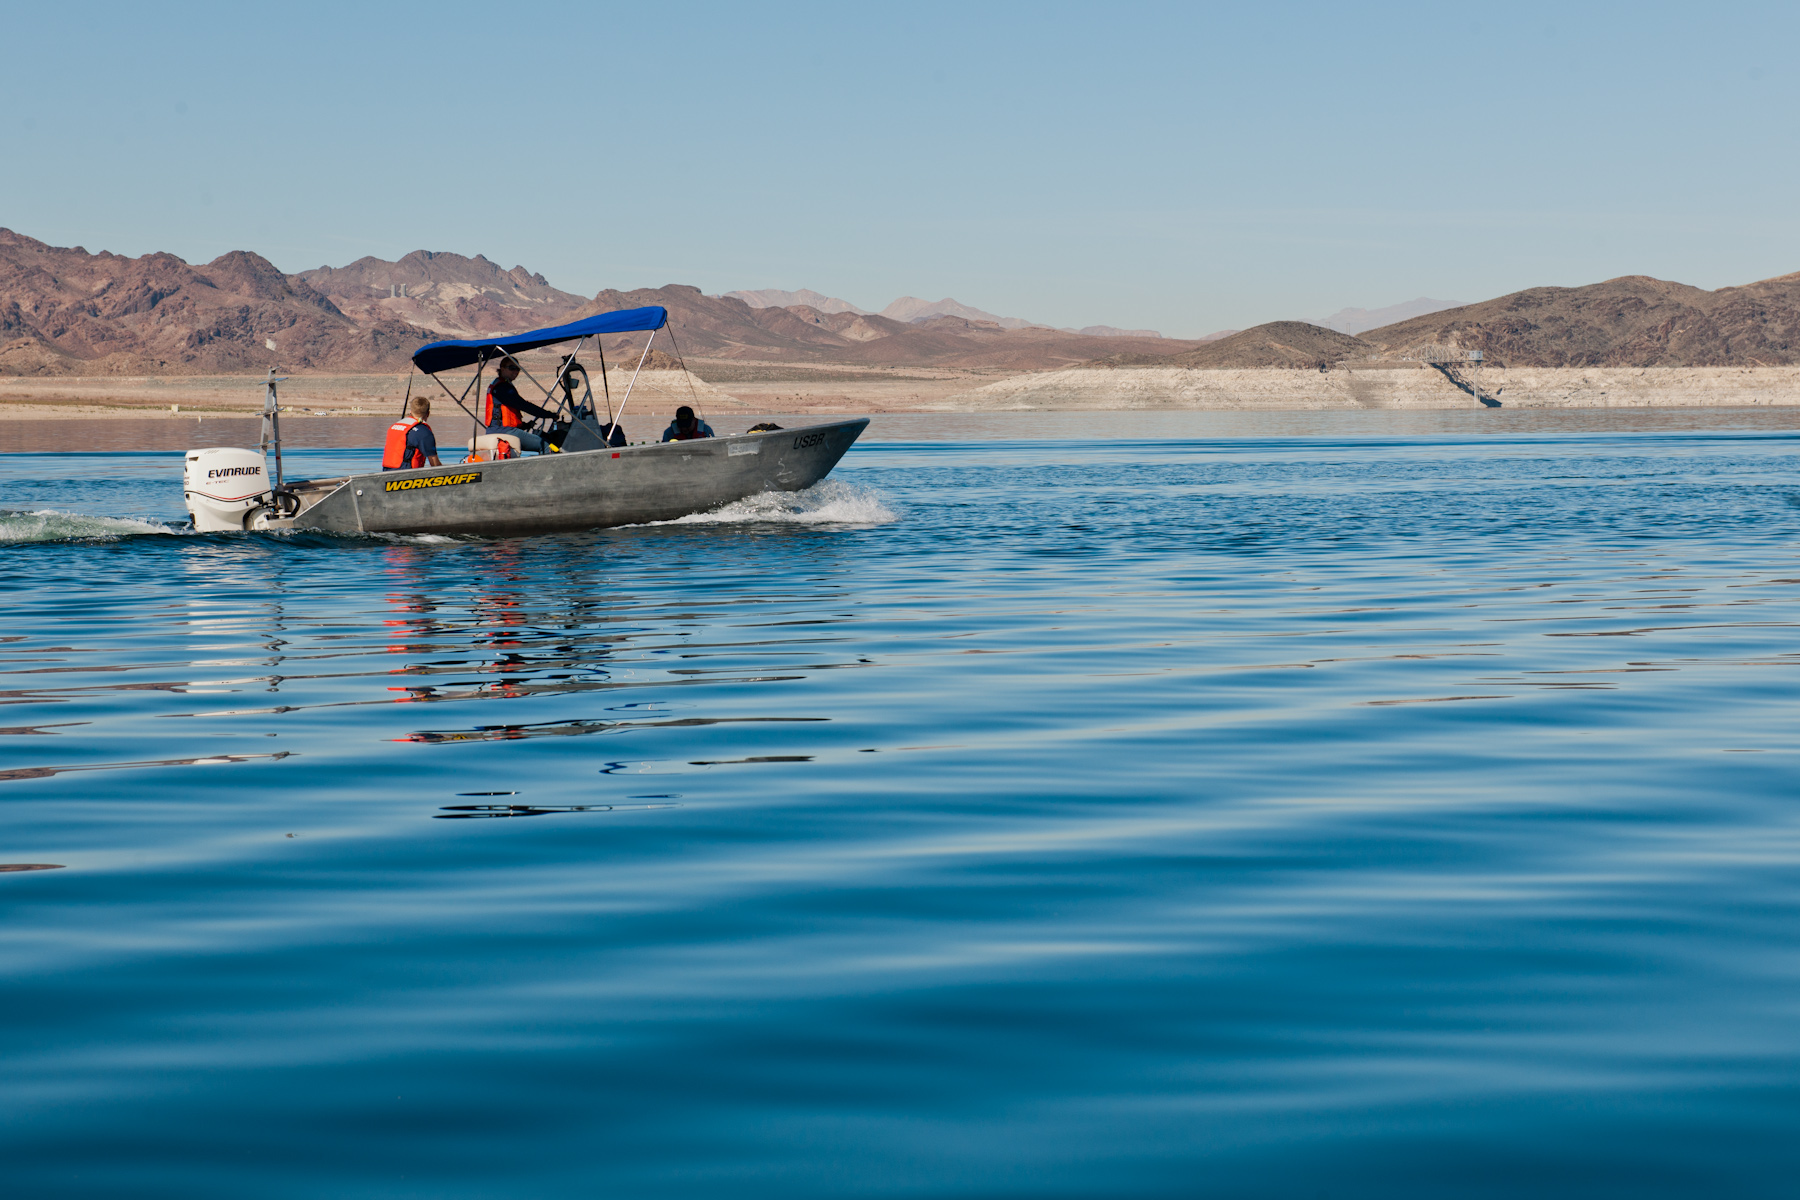 LCR Dive Team staff working at Lake Mead